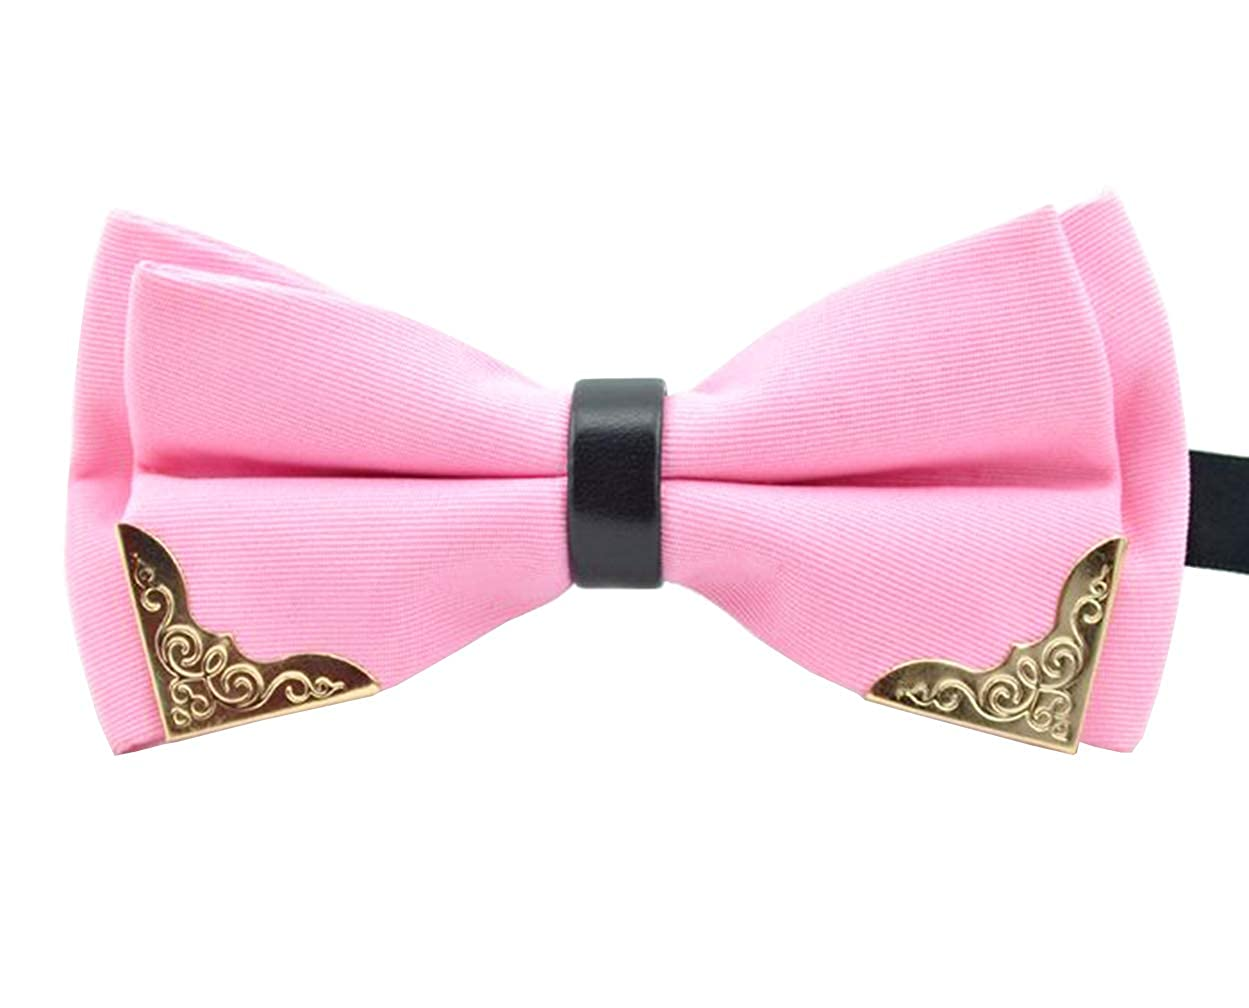 MENDENG Mens Gold Metal Black PU Leather Satin Bow Ties Tuxedo Formal Bowtie